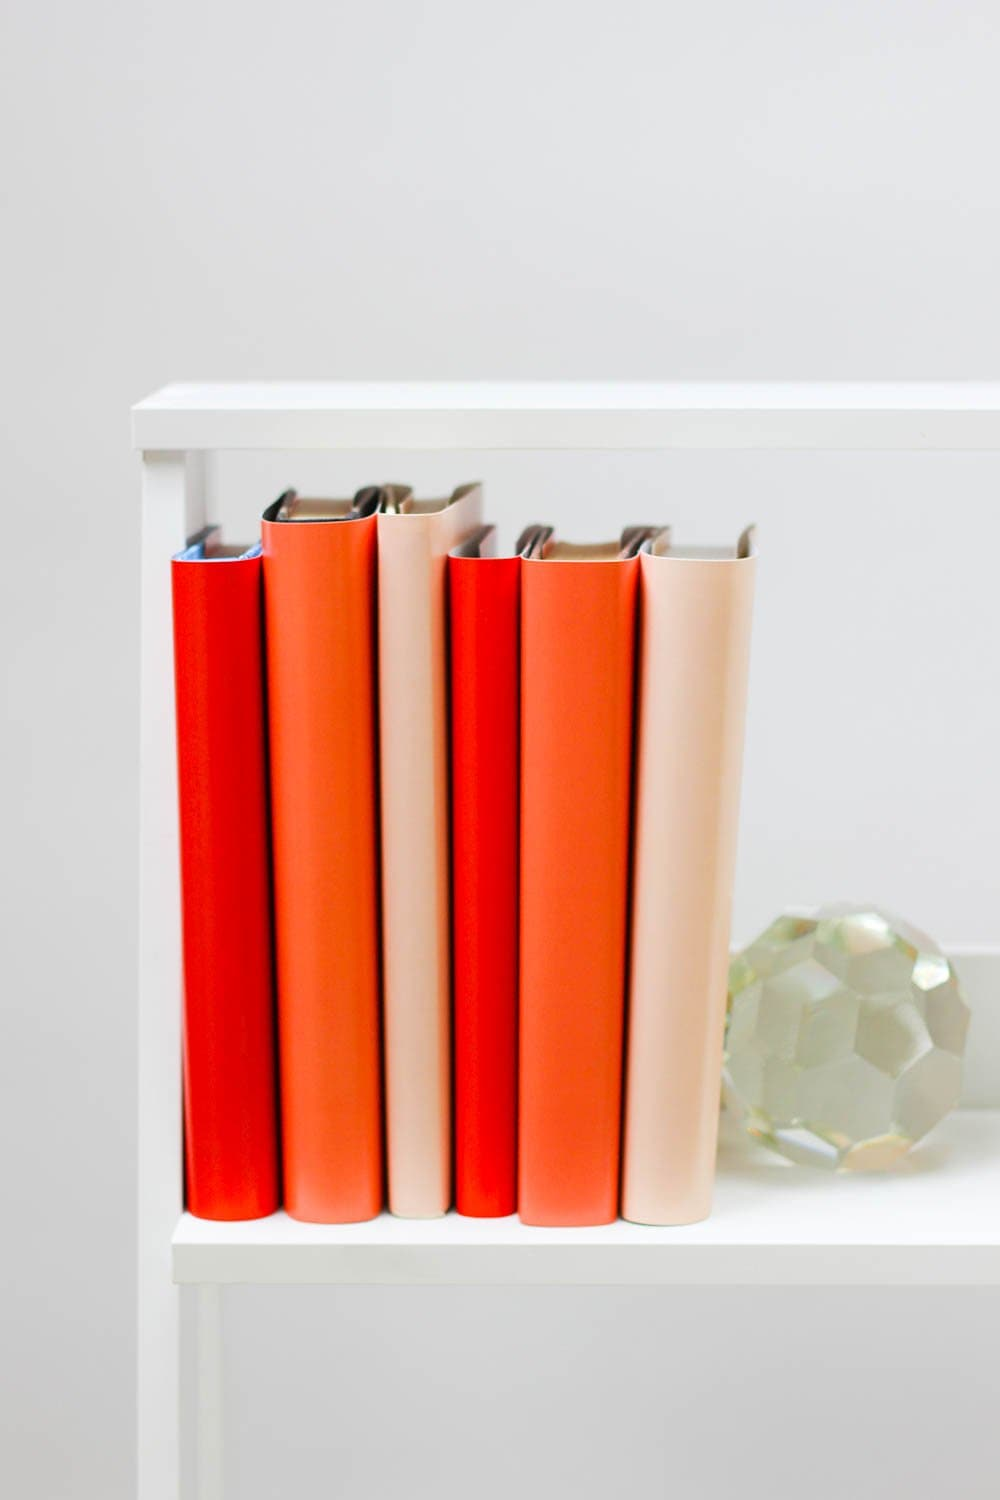 Large and small red books from red book covers